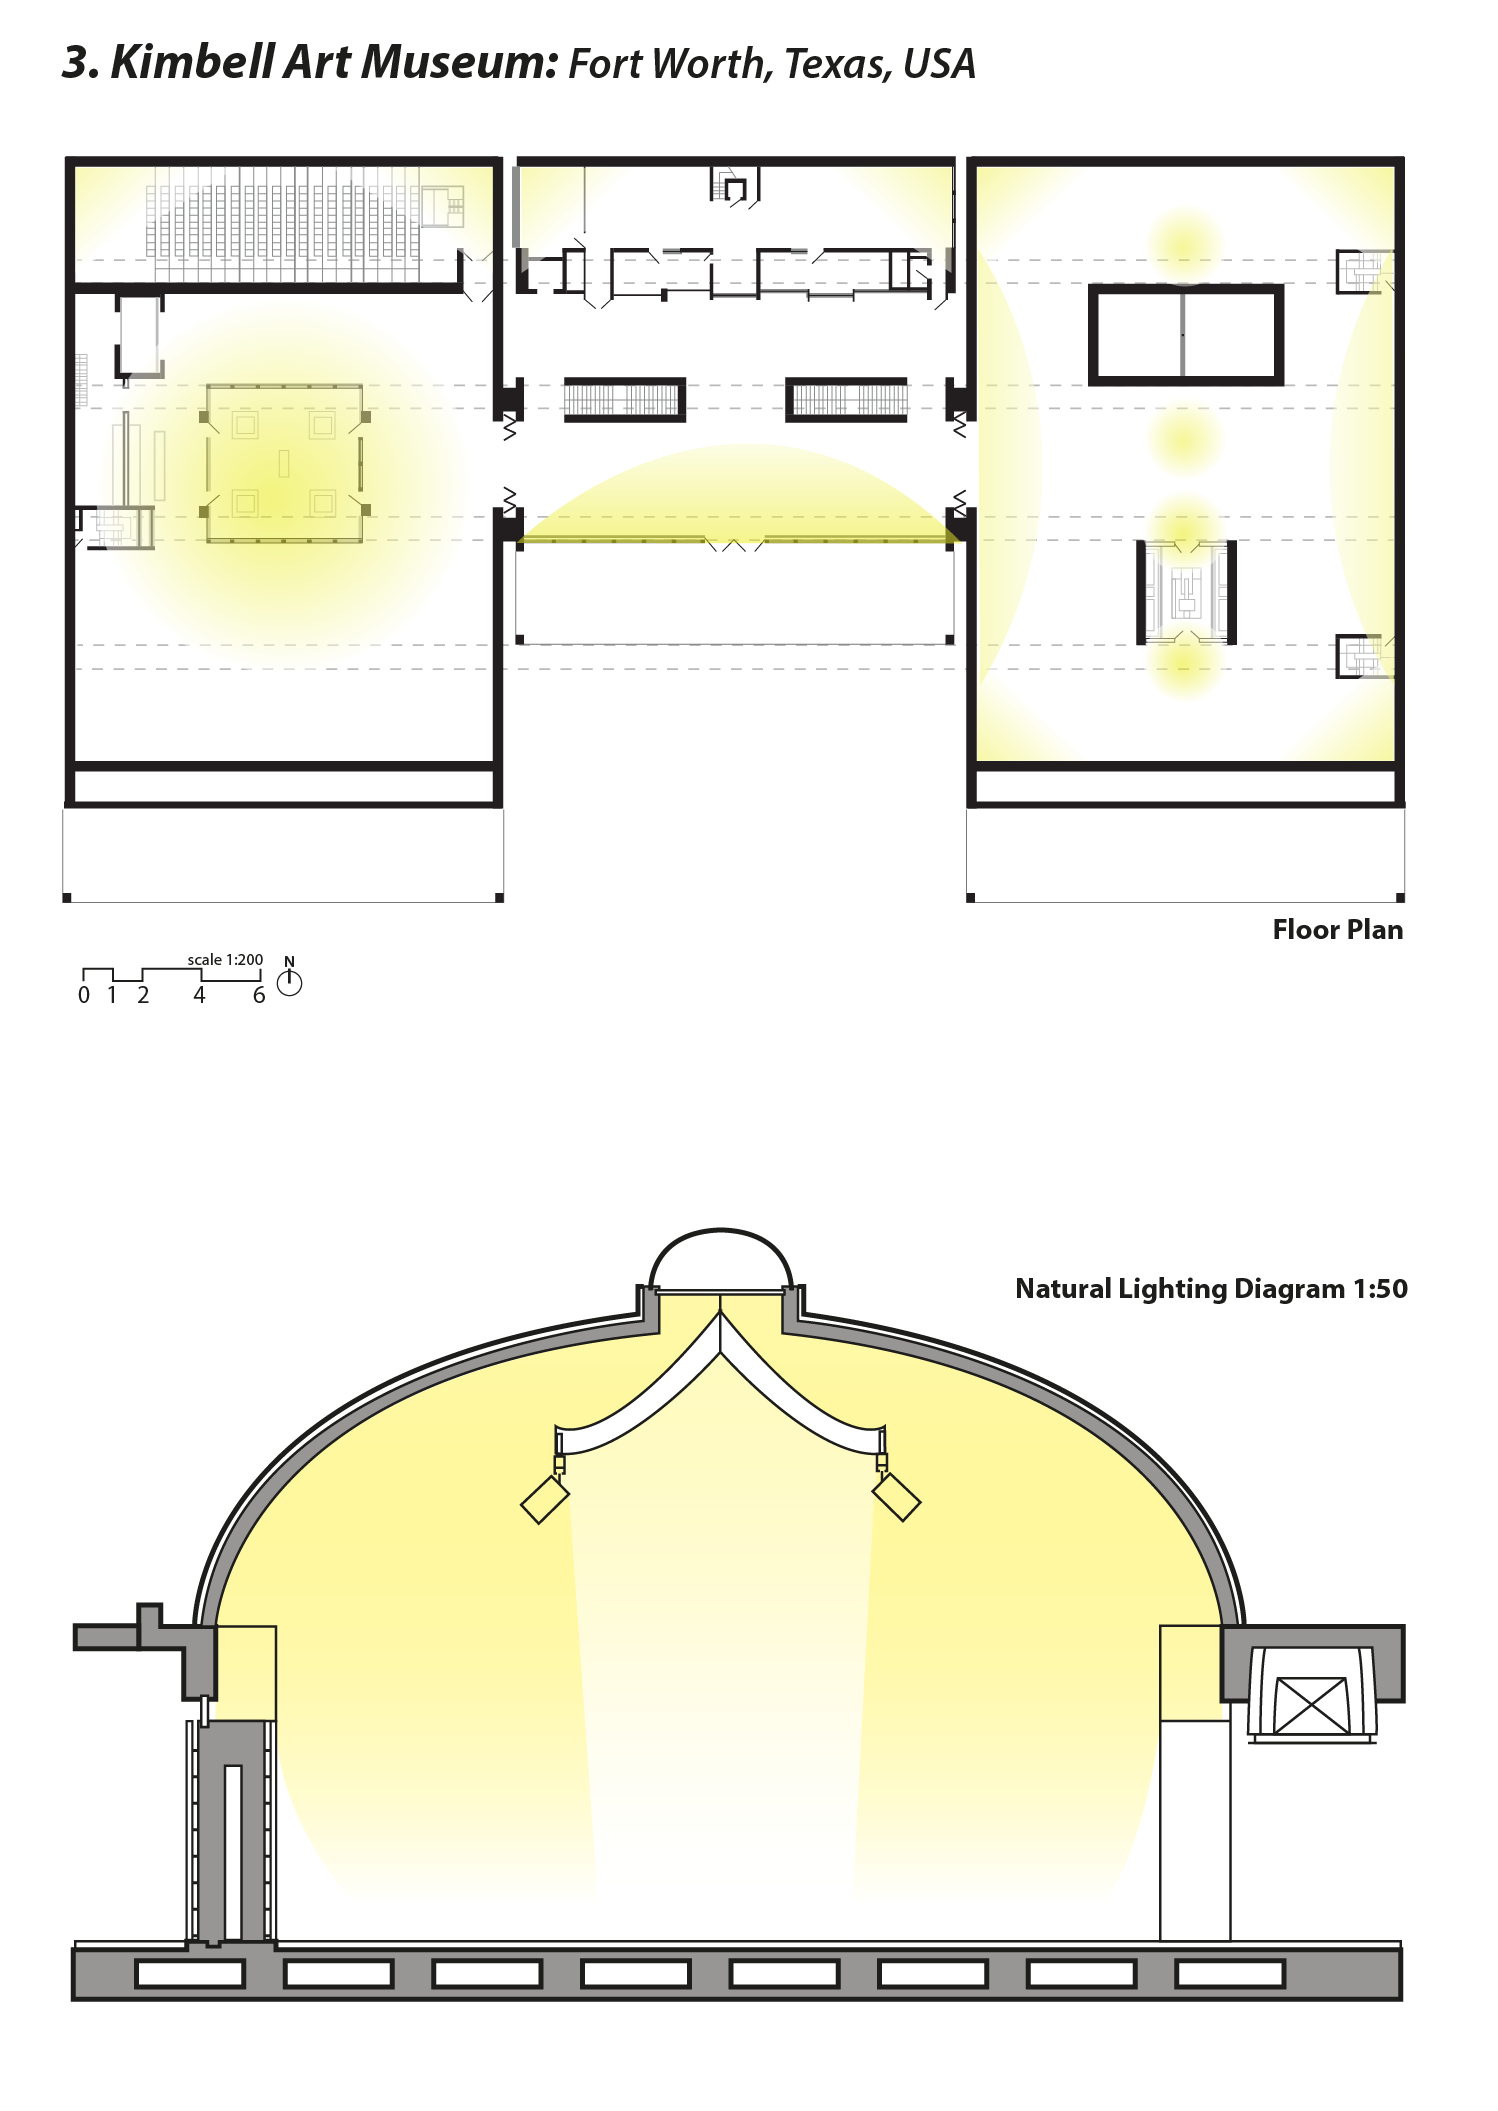 lighting architecture diagram wire for car stereo natural study of the kimbell museum arch design light details